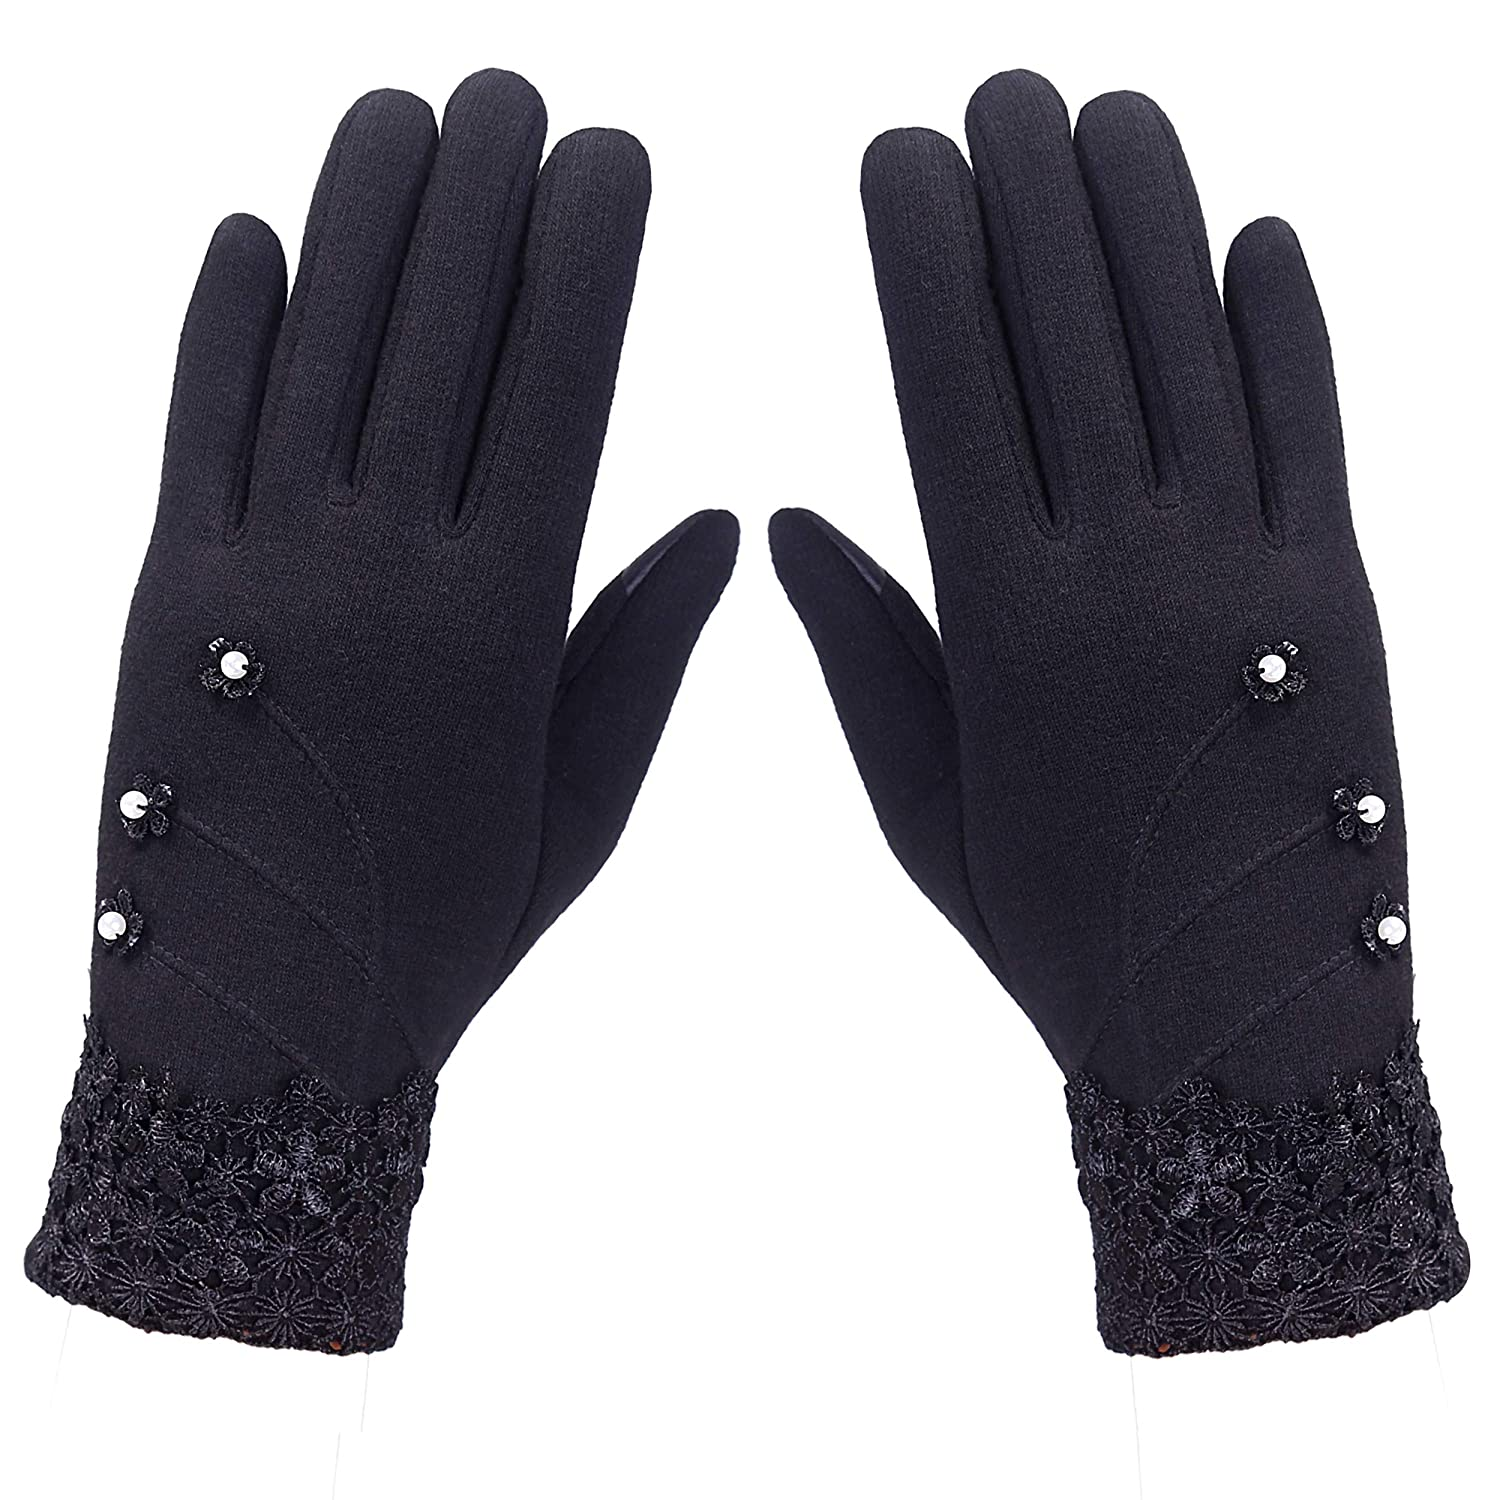 00dbfa180cf Gr8Life Women s Screen Gloves Warm Lined Thick Touch Warmer Winter Gloves  at Amazon Women s Clothing store